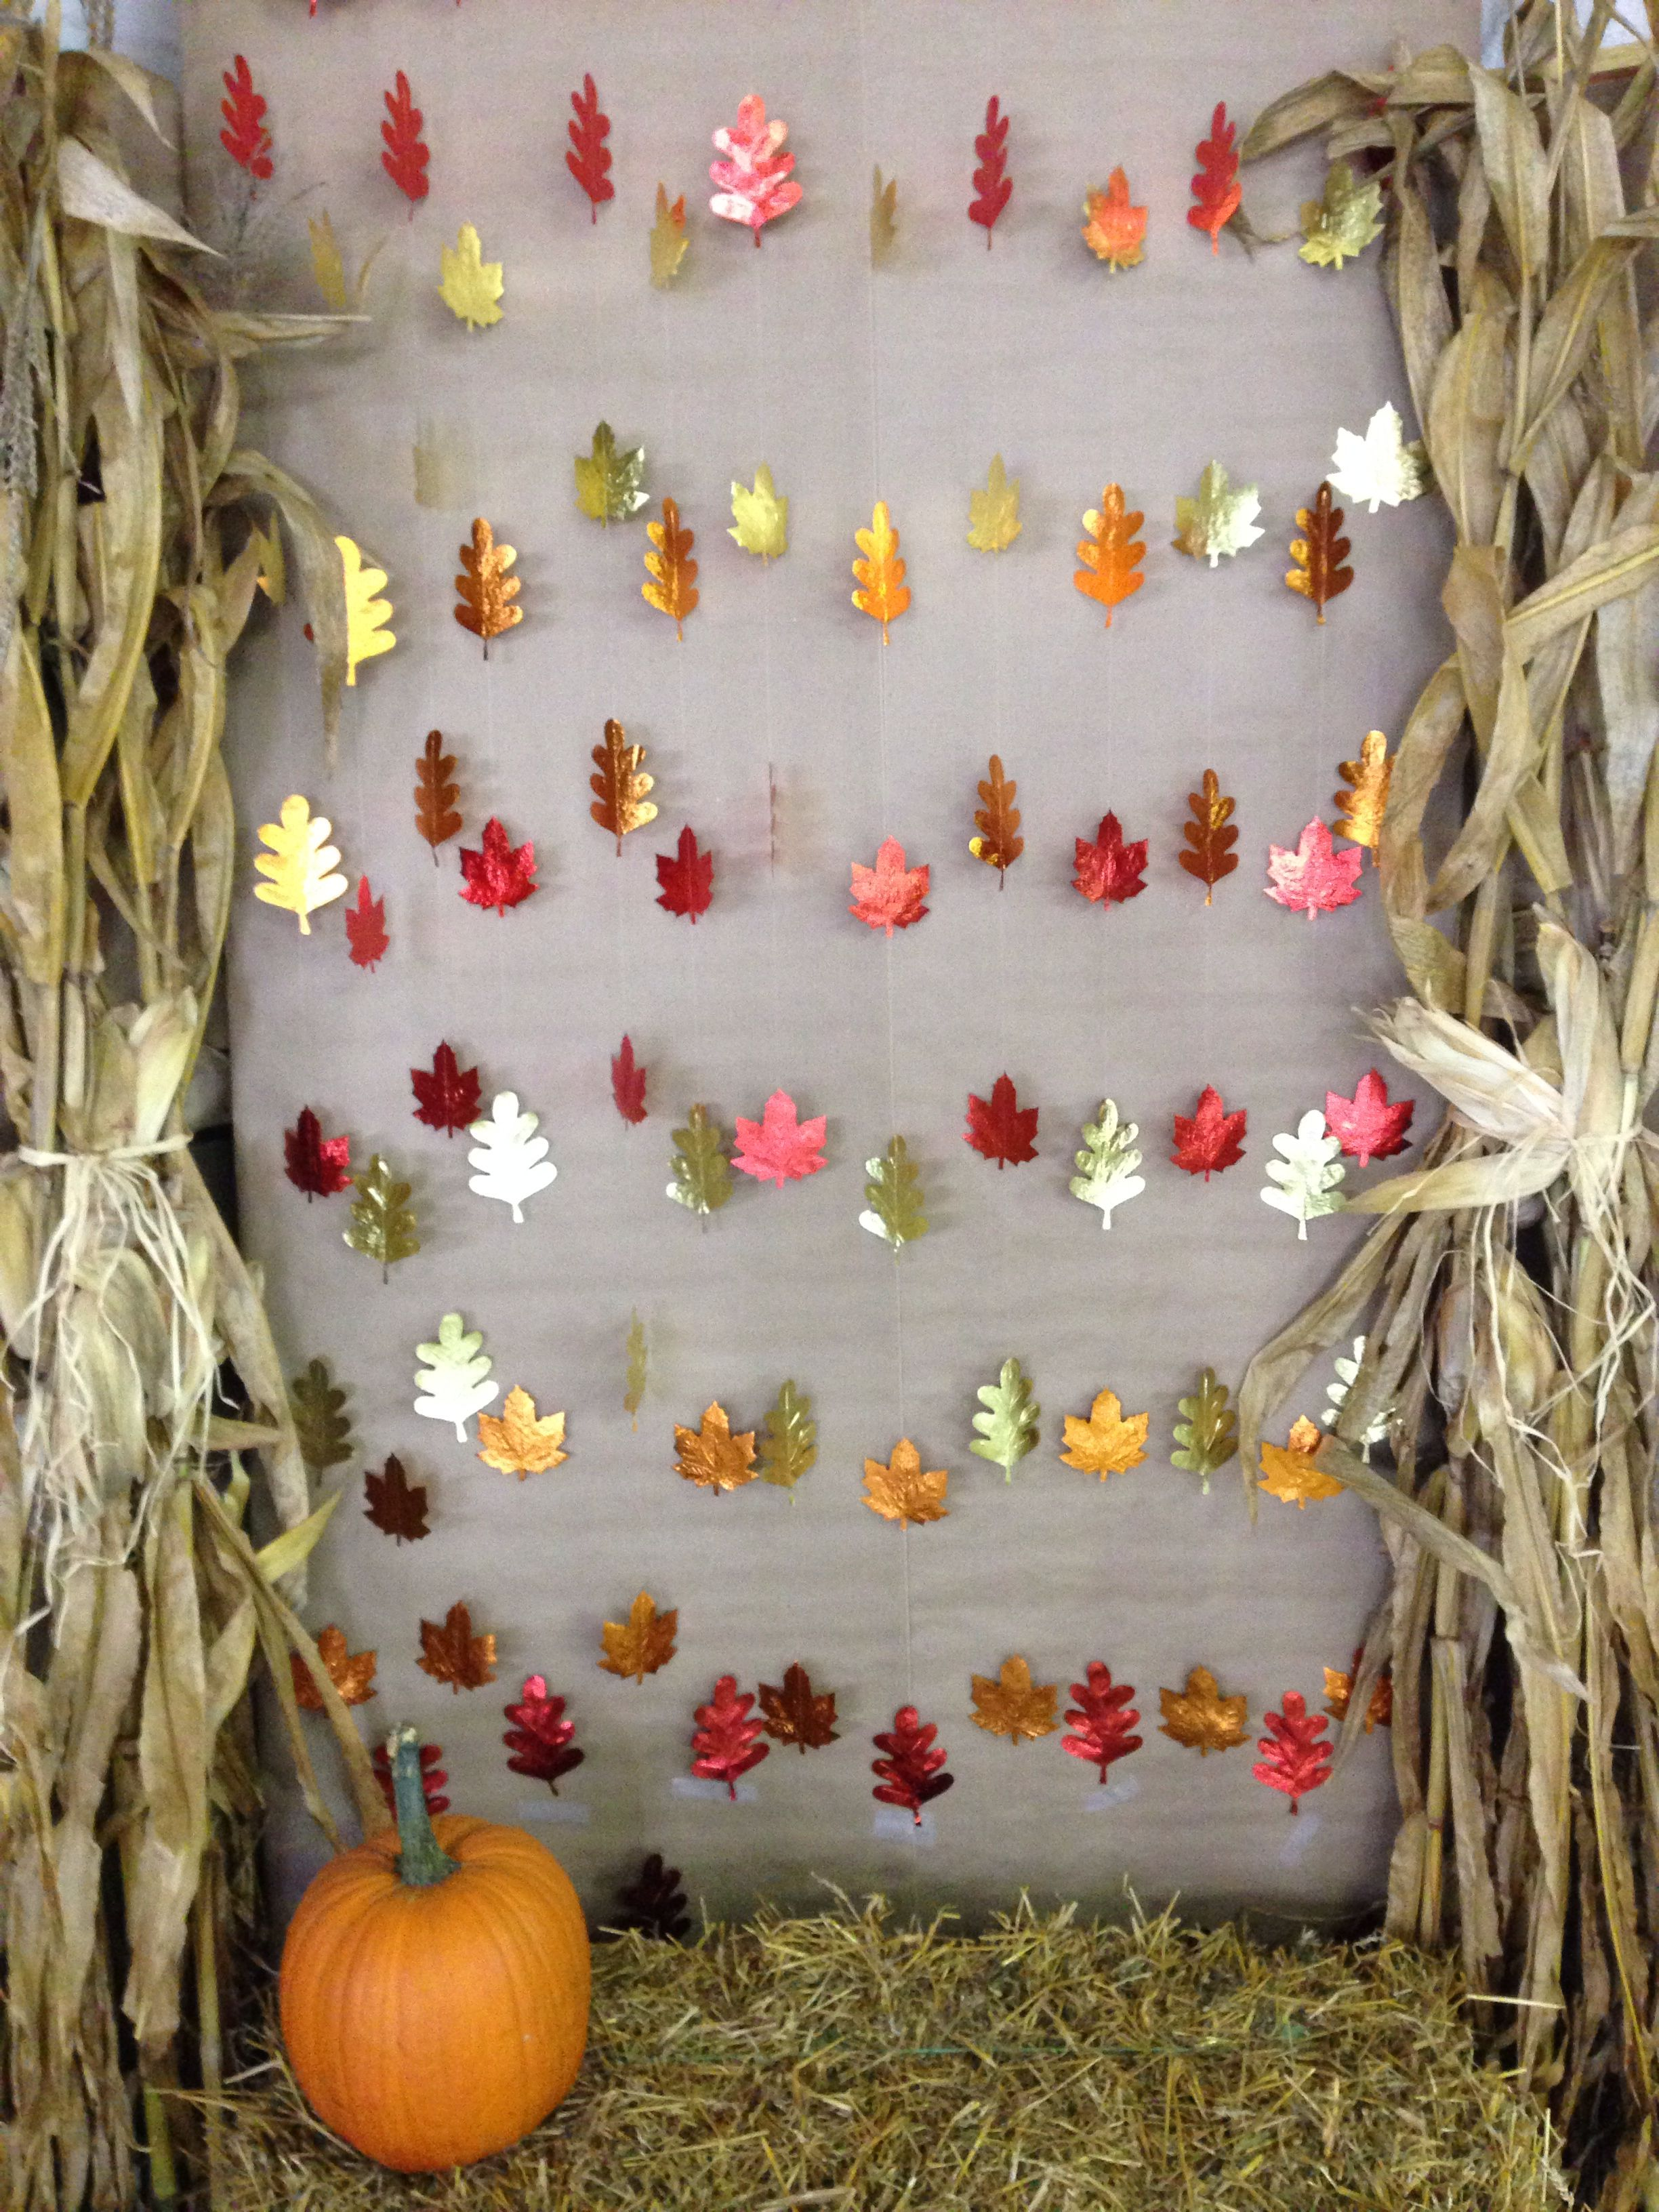 Diy fall photo booth backdrop for halloween or for Back ground decoration